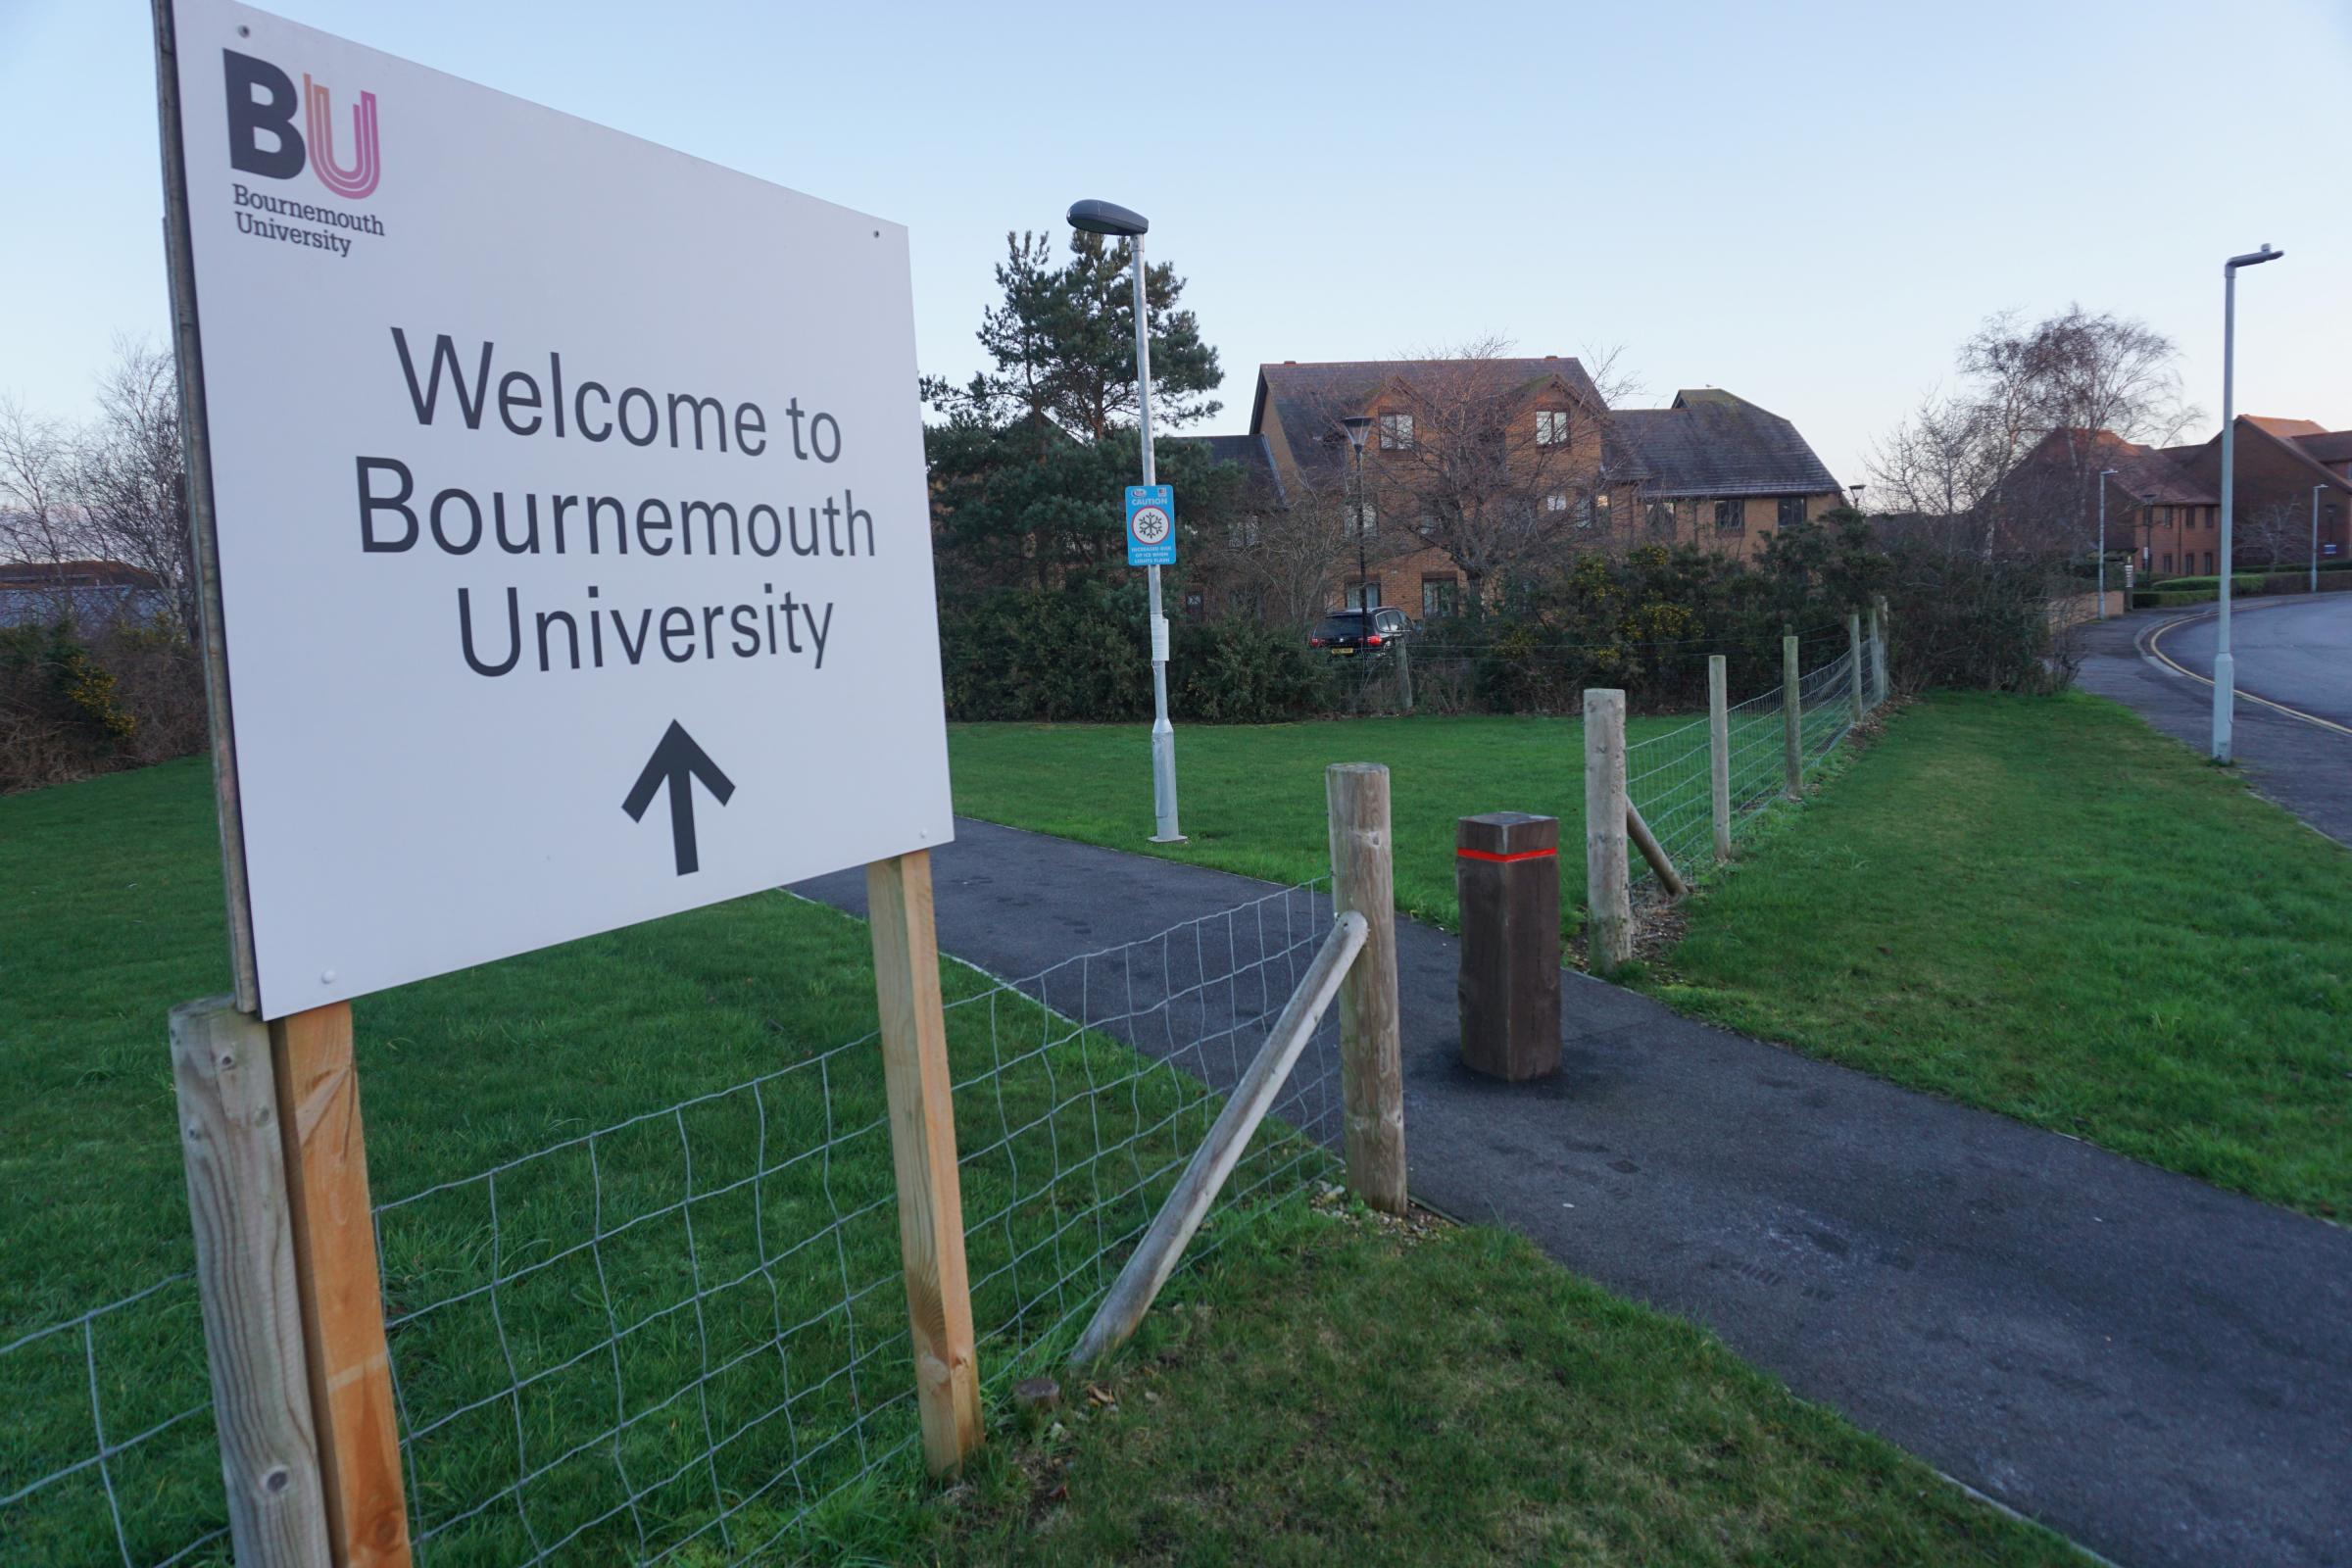 Callum Jewell was found dead in his room at Bournemouth University accommodation